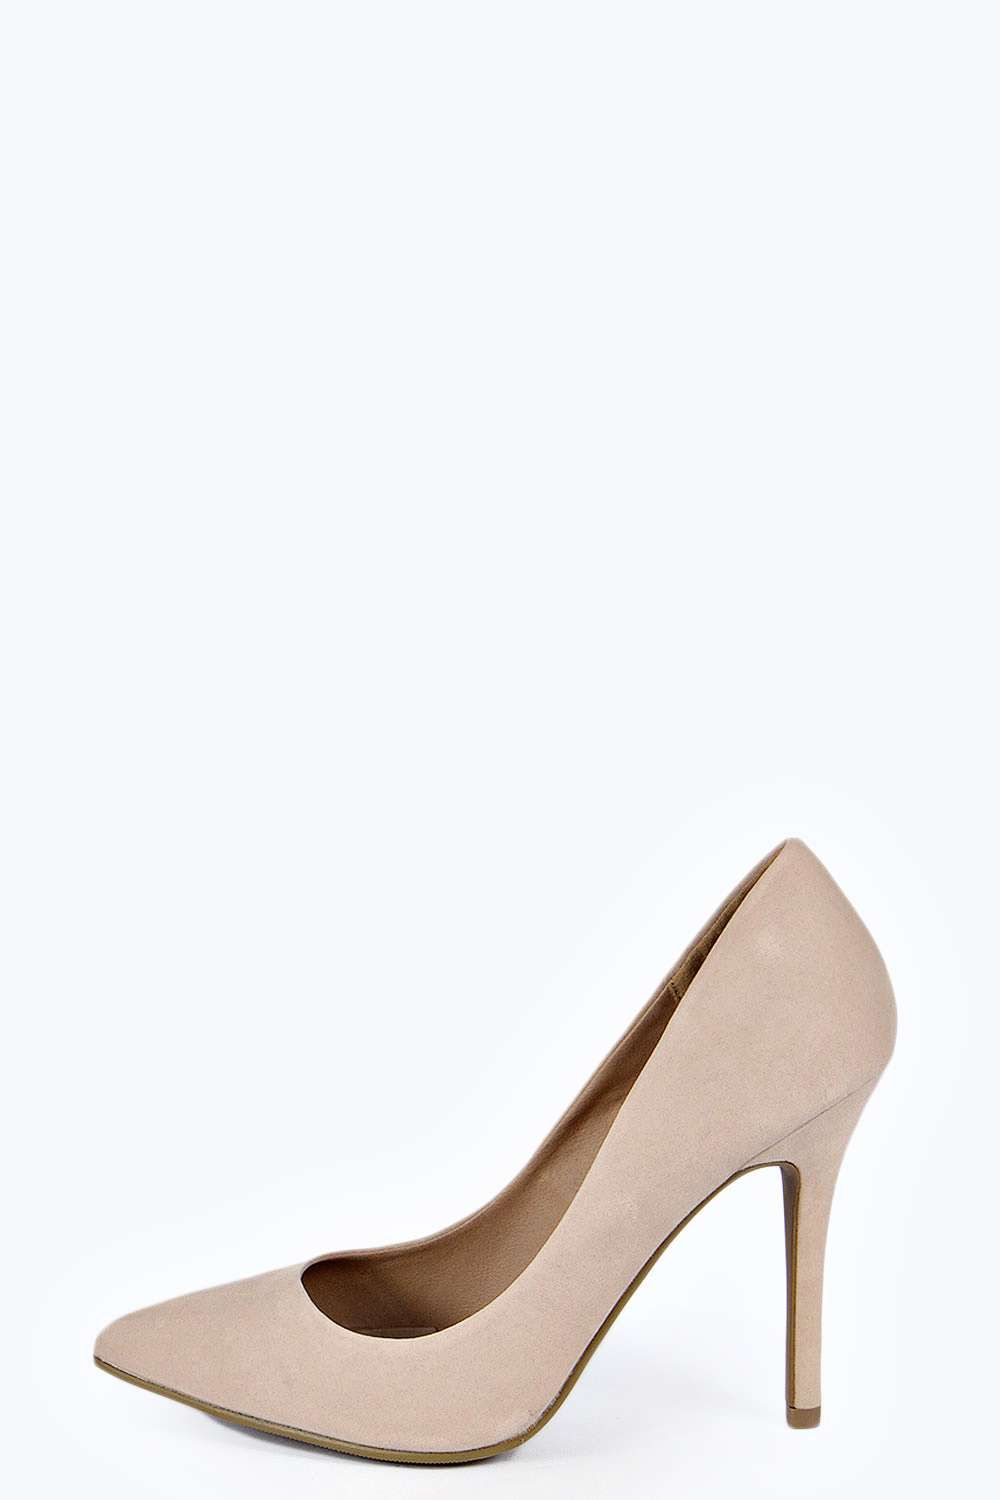 Boohoo Womens Mia Pointed Court Heels